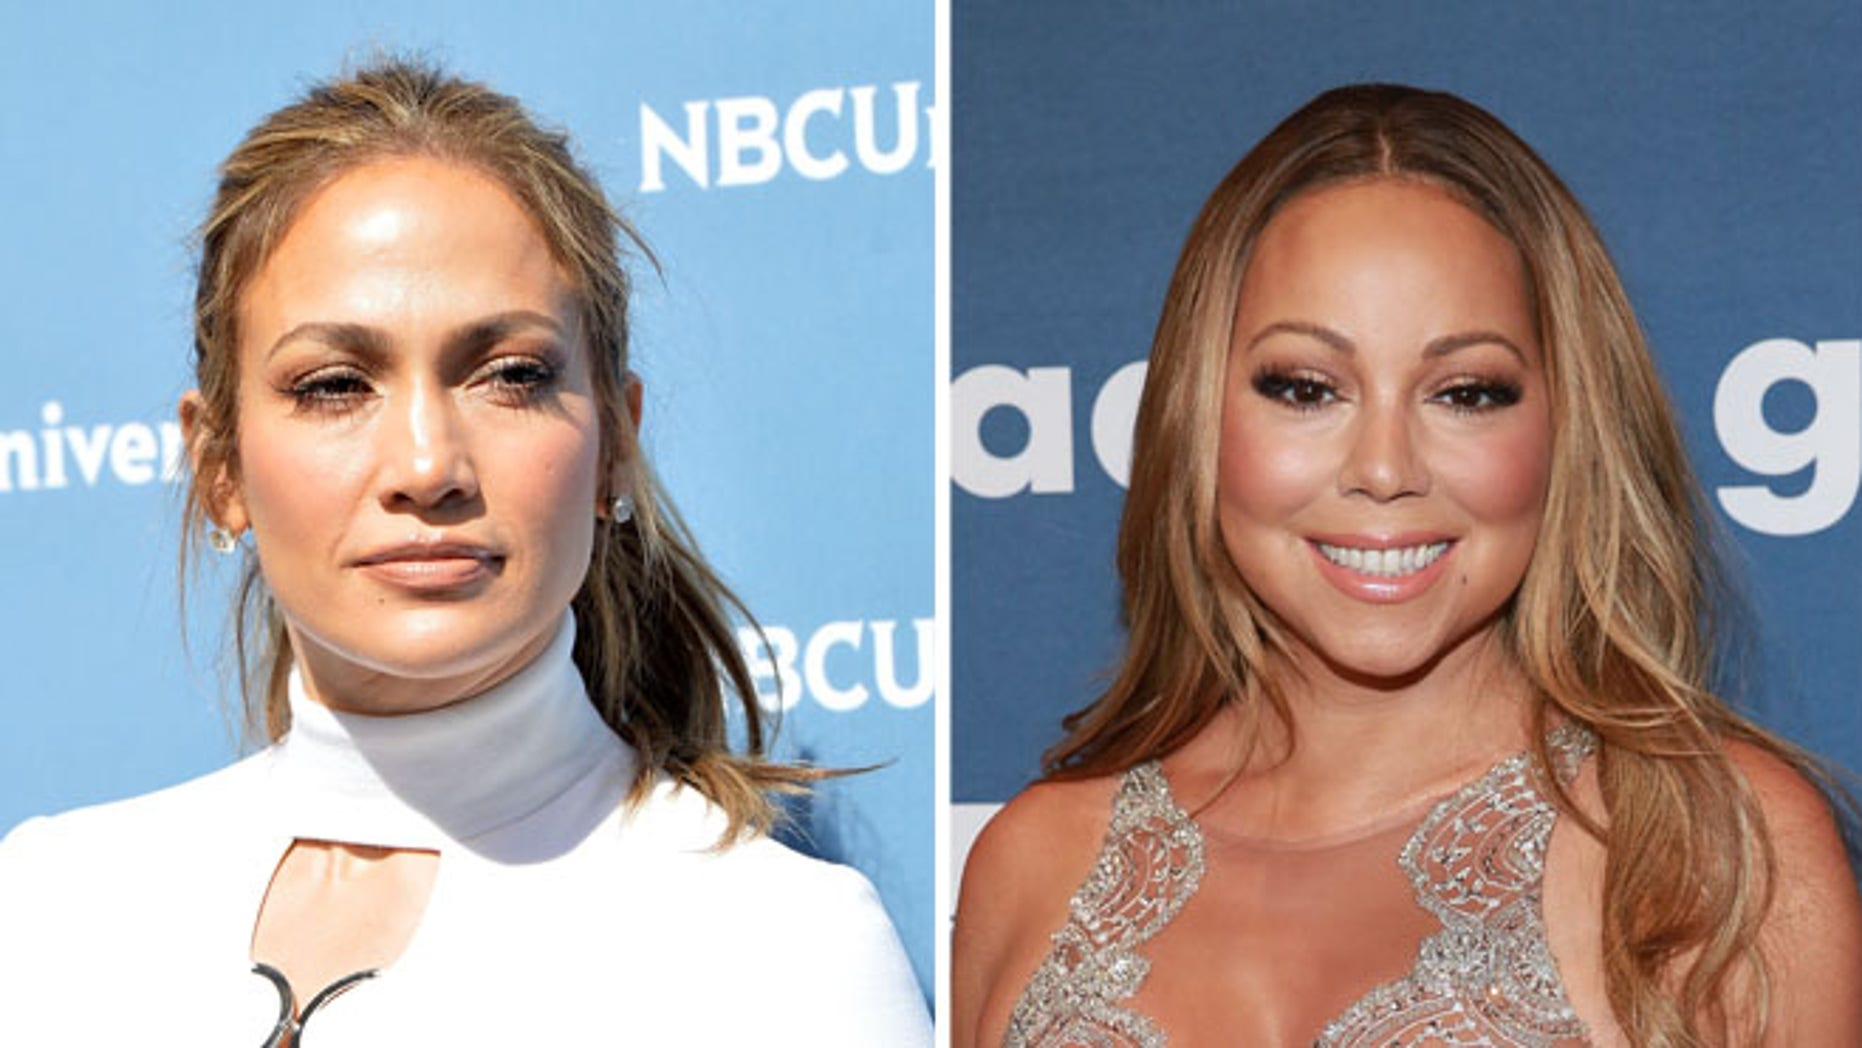 Jennifer Lopez and Mariah Carey. (Photos: Getty Images)